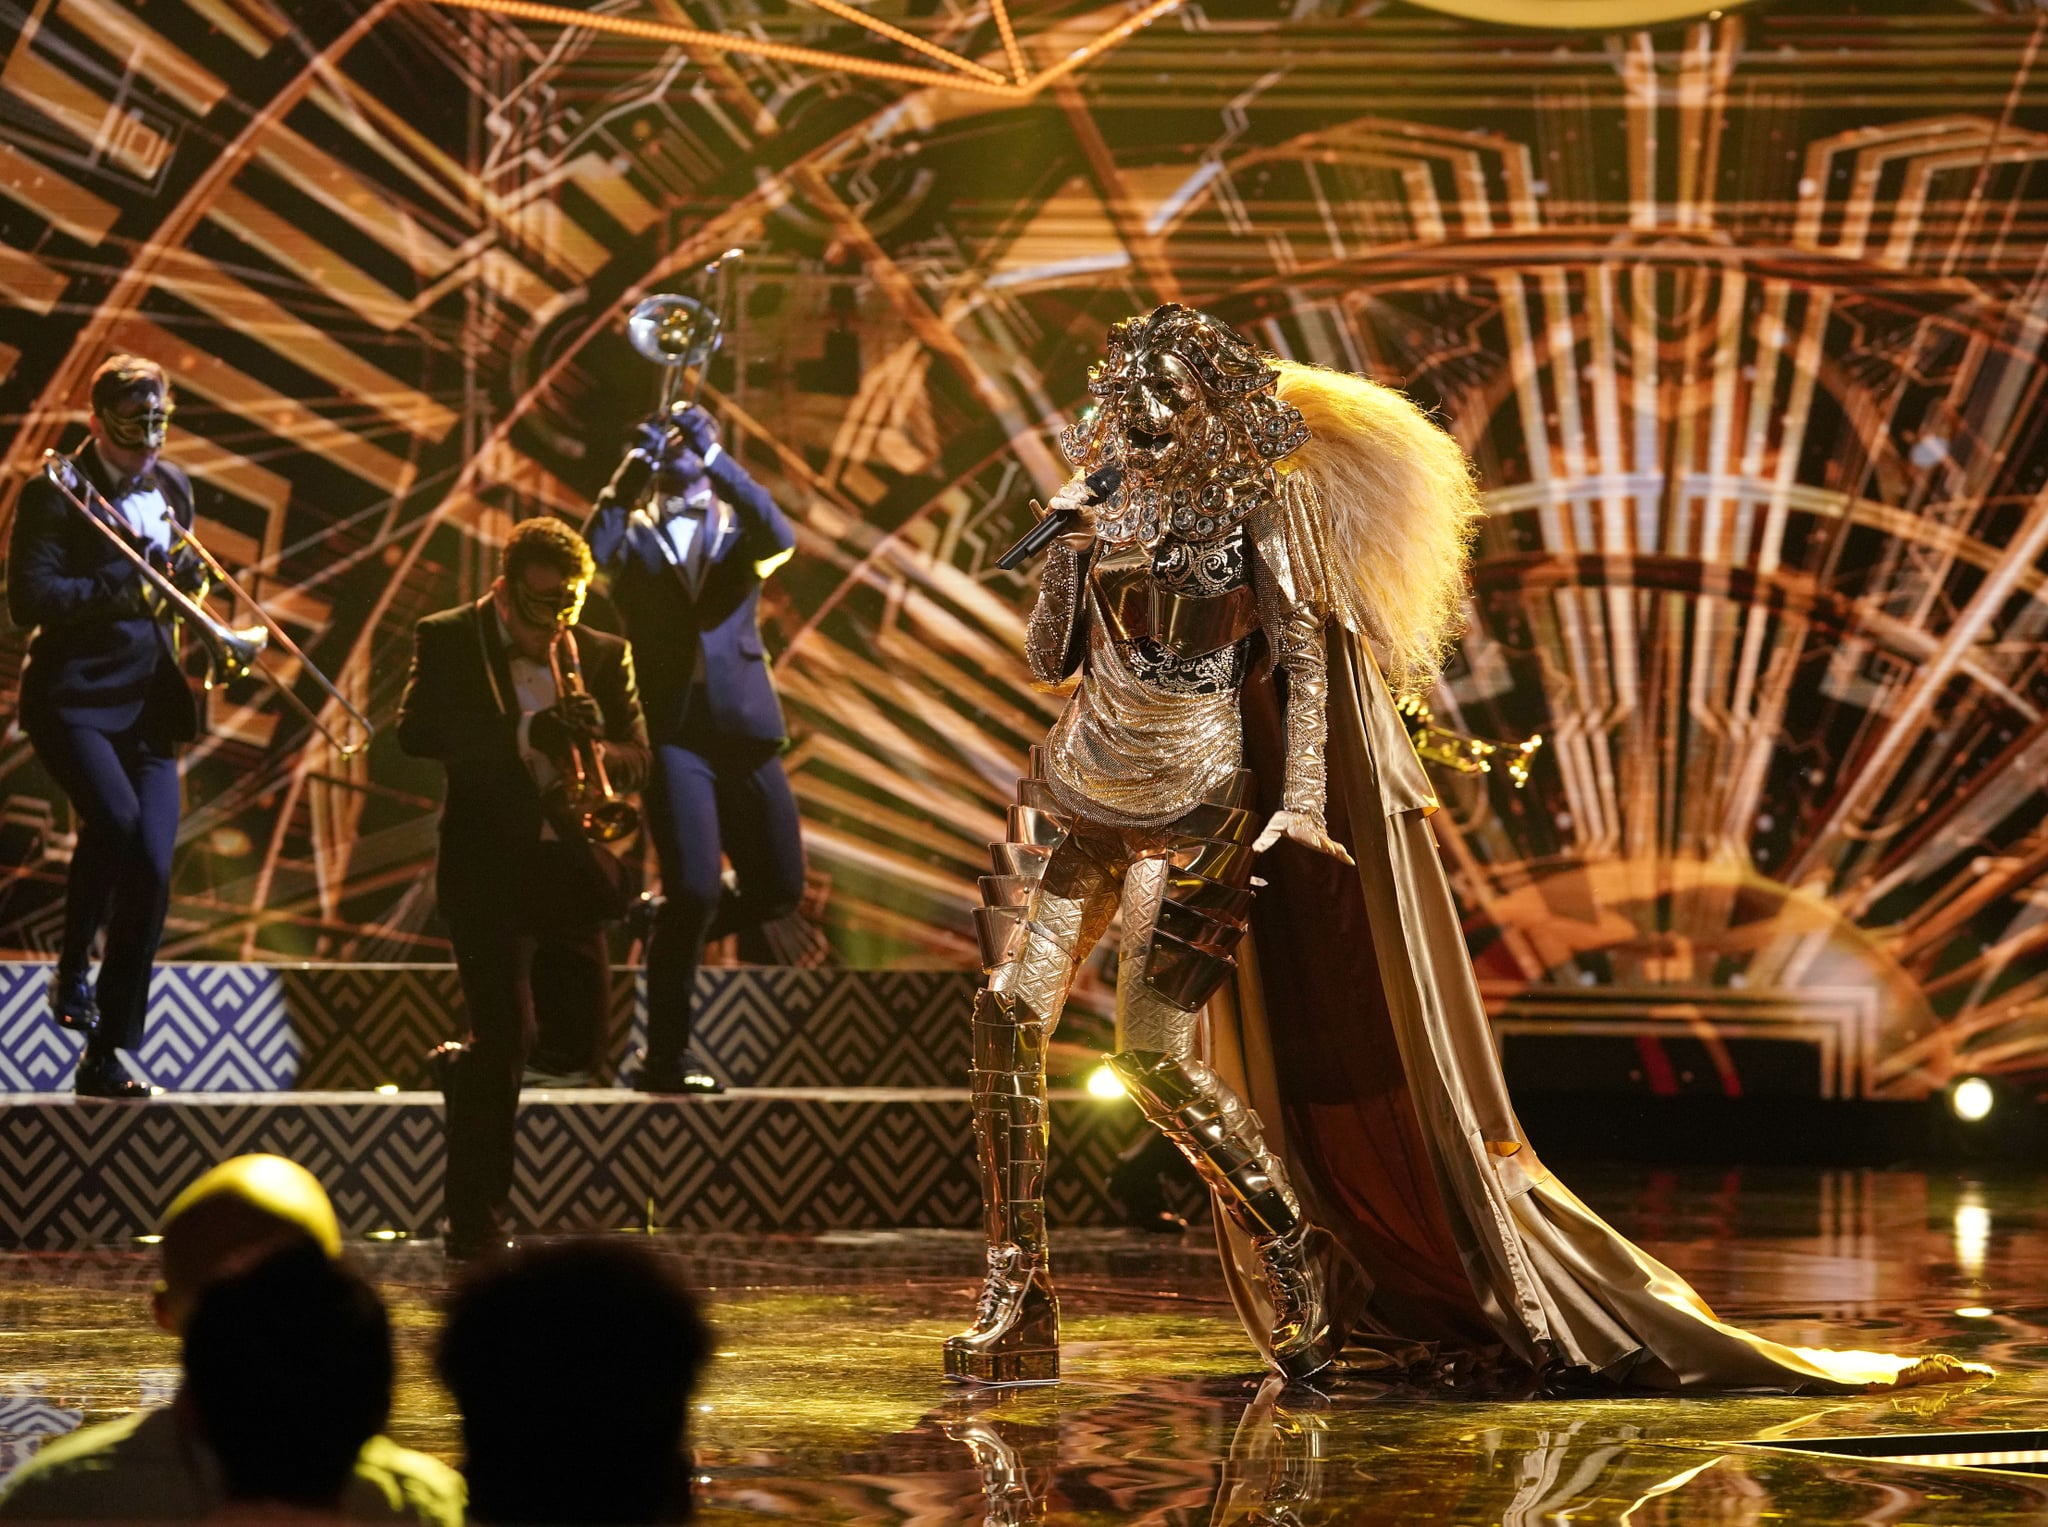 THE MASKED SINGER, Lion, 'Mask On Face Off', (Season 1, ep. 101, aired Jan. 2, 2019). photo: Michael Becker / Fox / Courtesy: Everett Collection